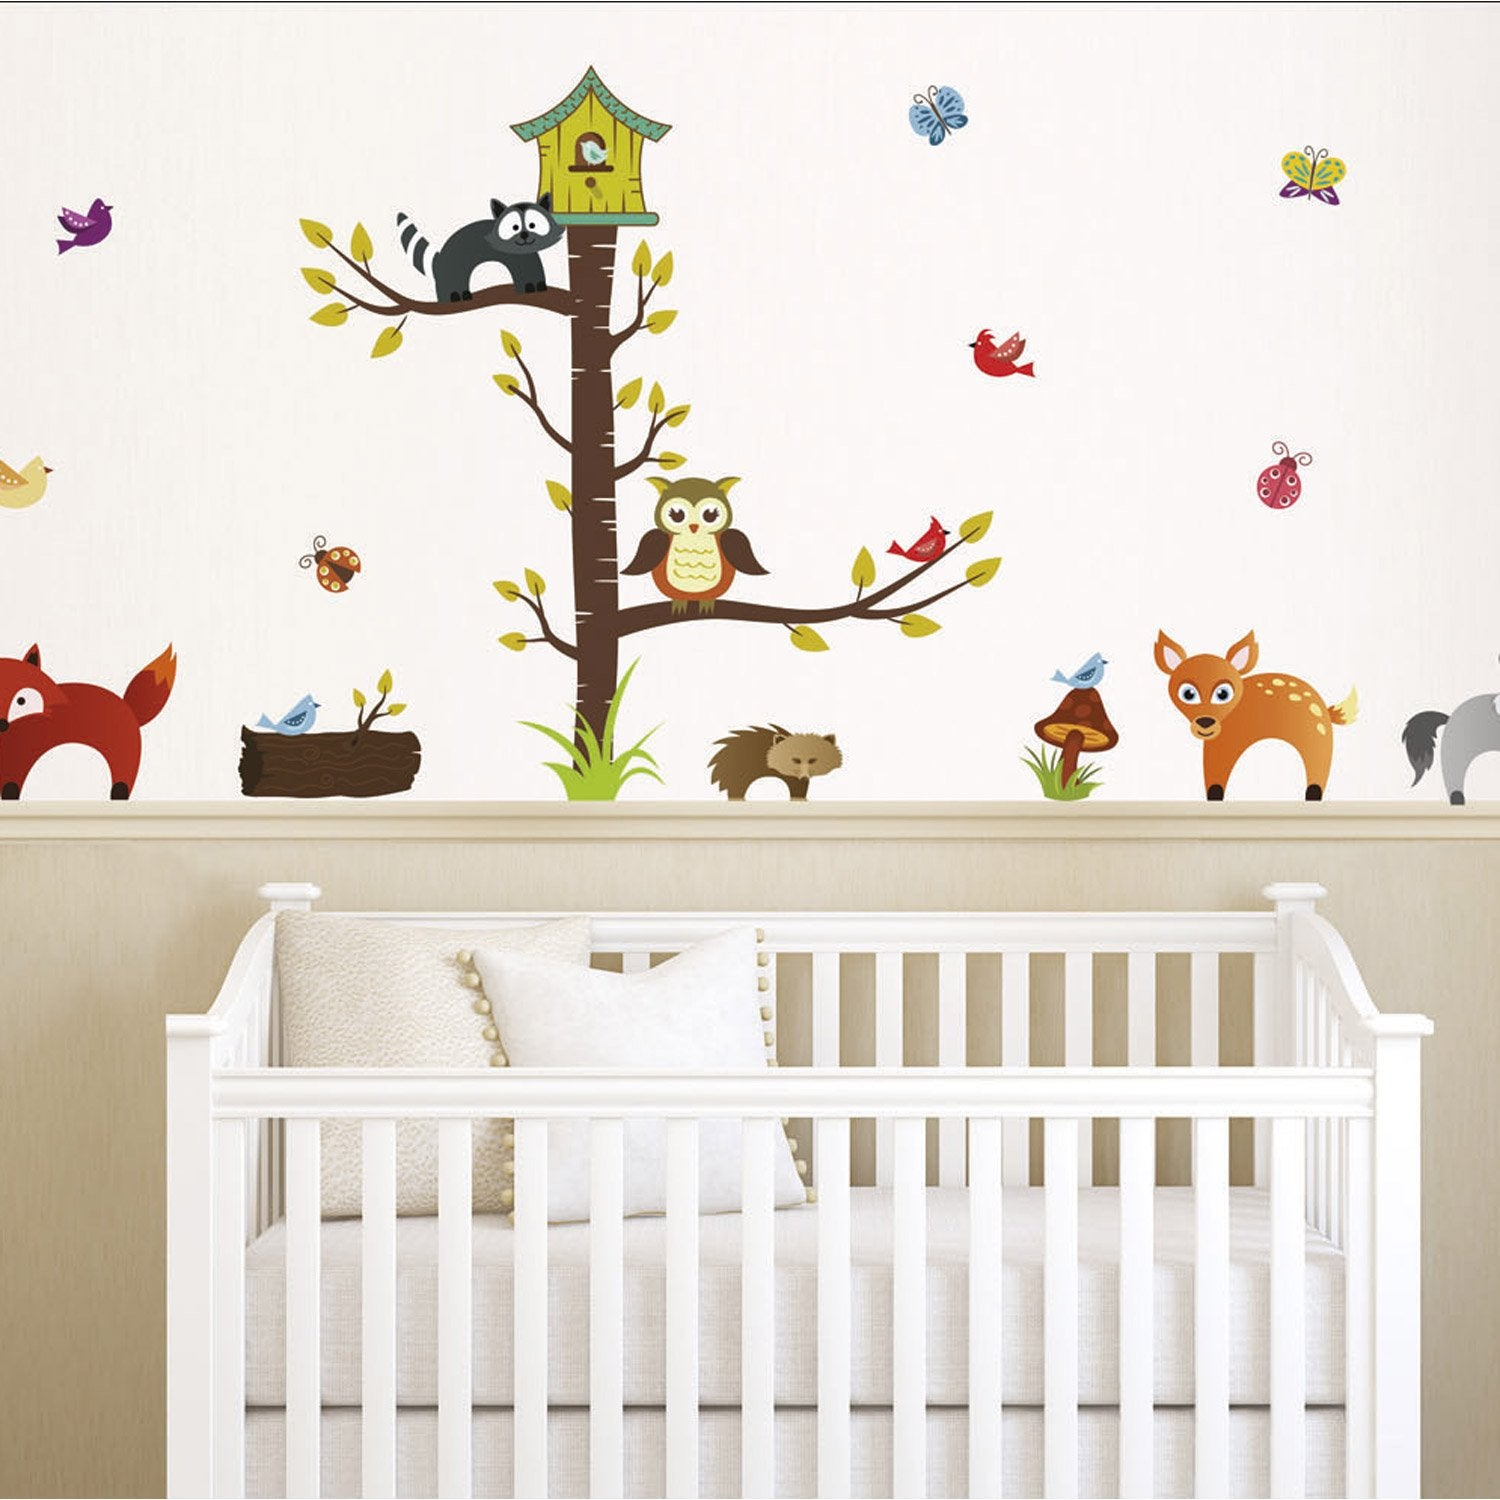 sticker forrest animals 50 cm x 70 cm leroy merlin. Black Bedroom Furniture Sets. Home Design Ideas